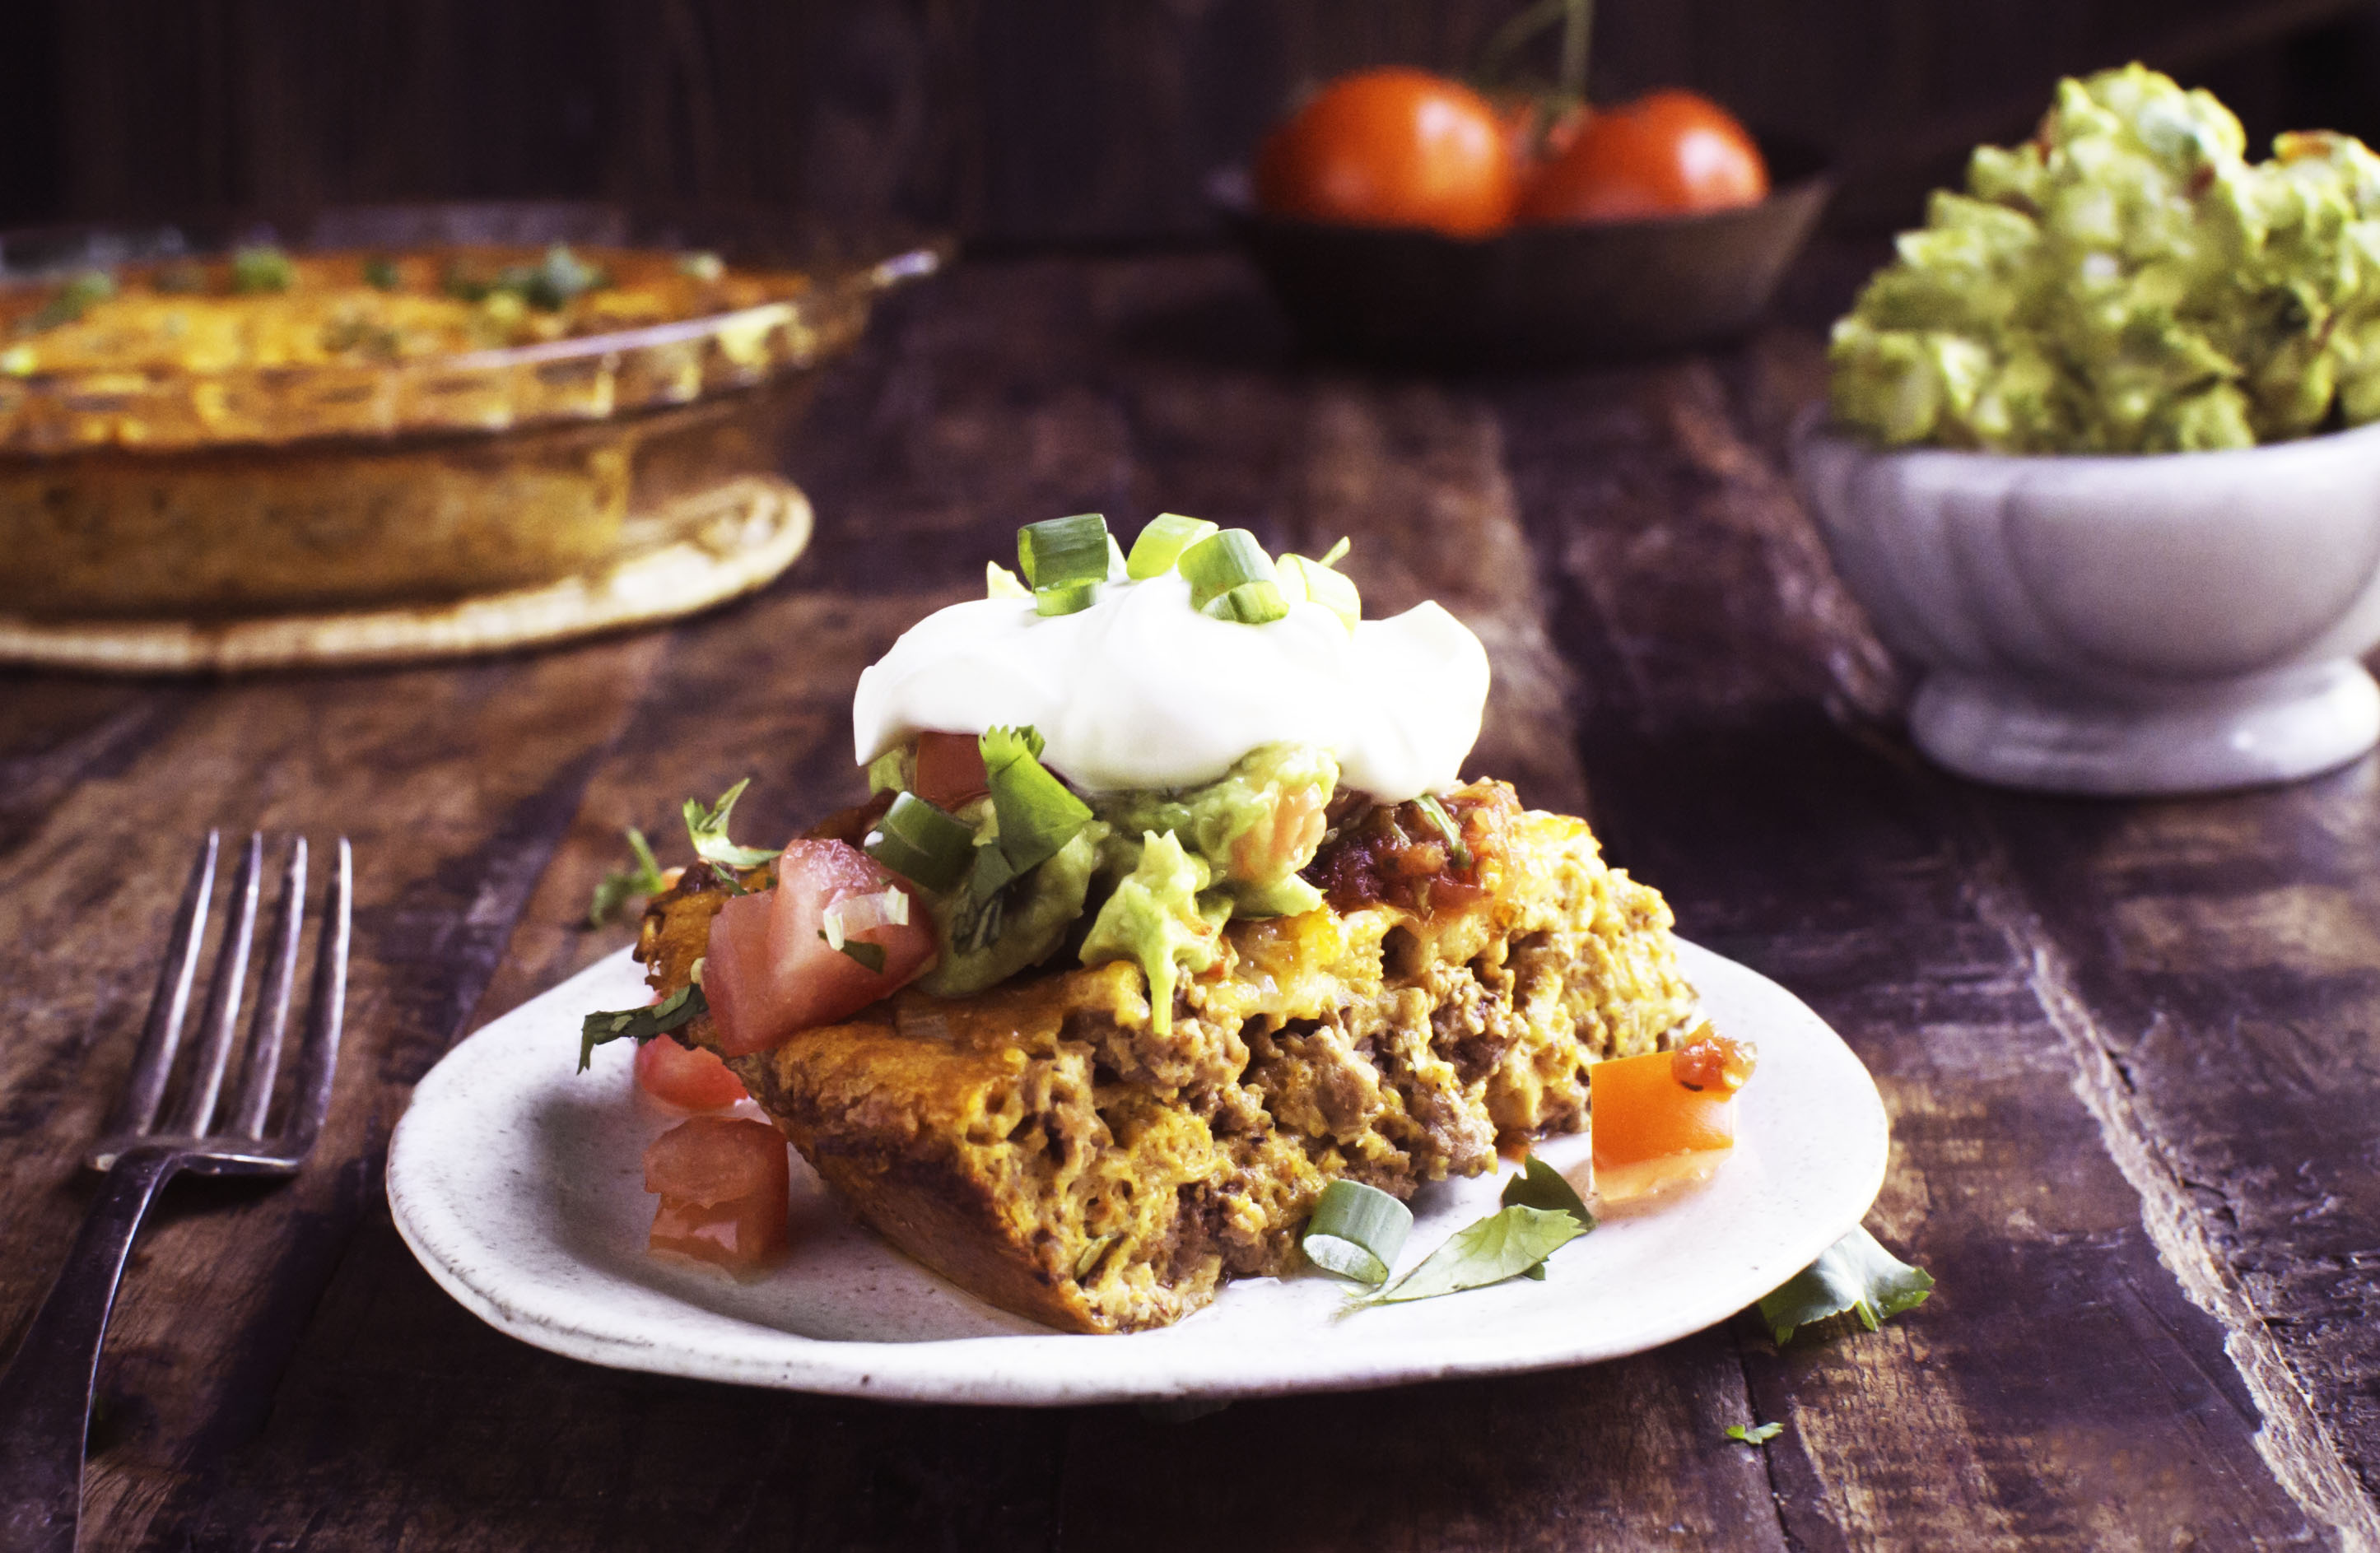 Delicious Low-Carb Crustless Taco Pie Recipe - Simply So Healthy